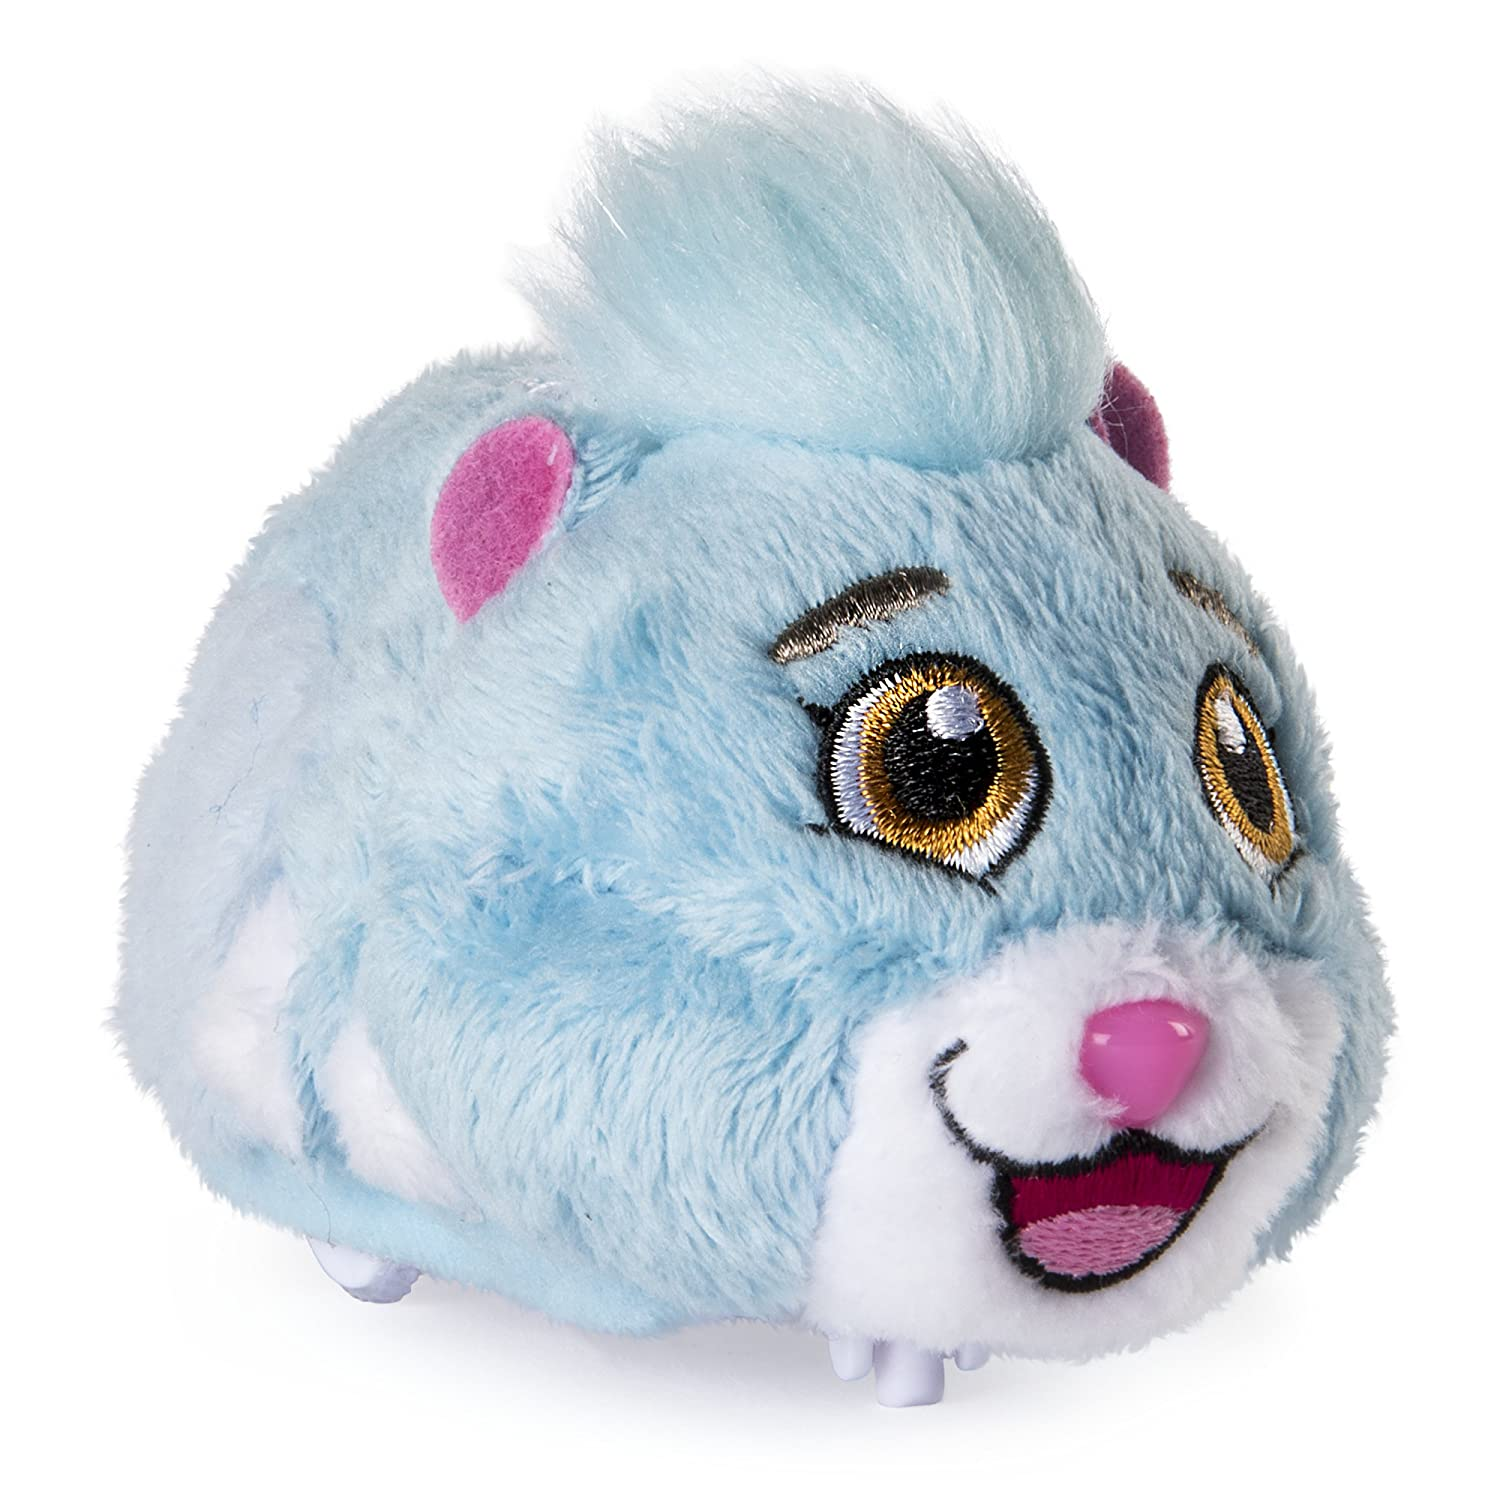 """Zhu Zhu Pets - Chunk, Furry 4"""" Hamster Toy with Sound and Movement Spin Master 20093432"""